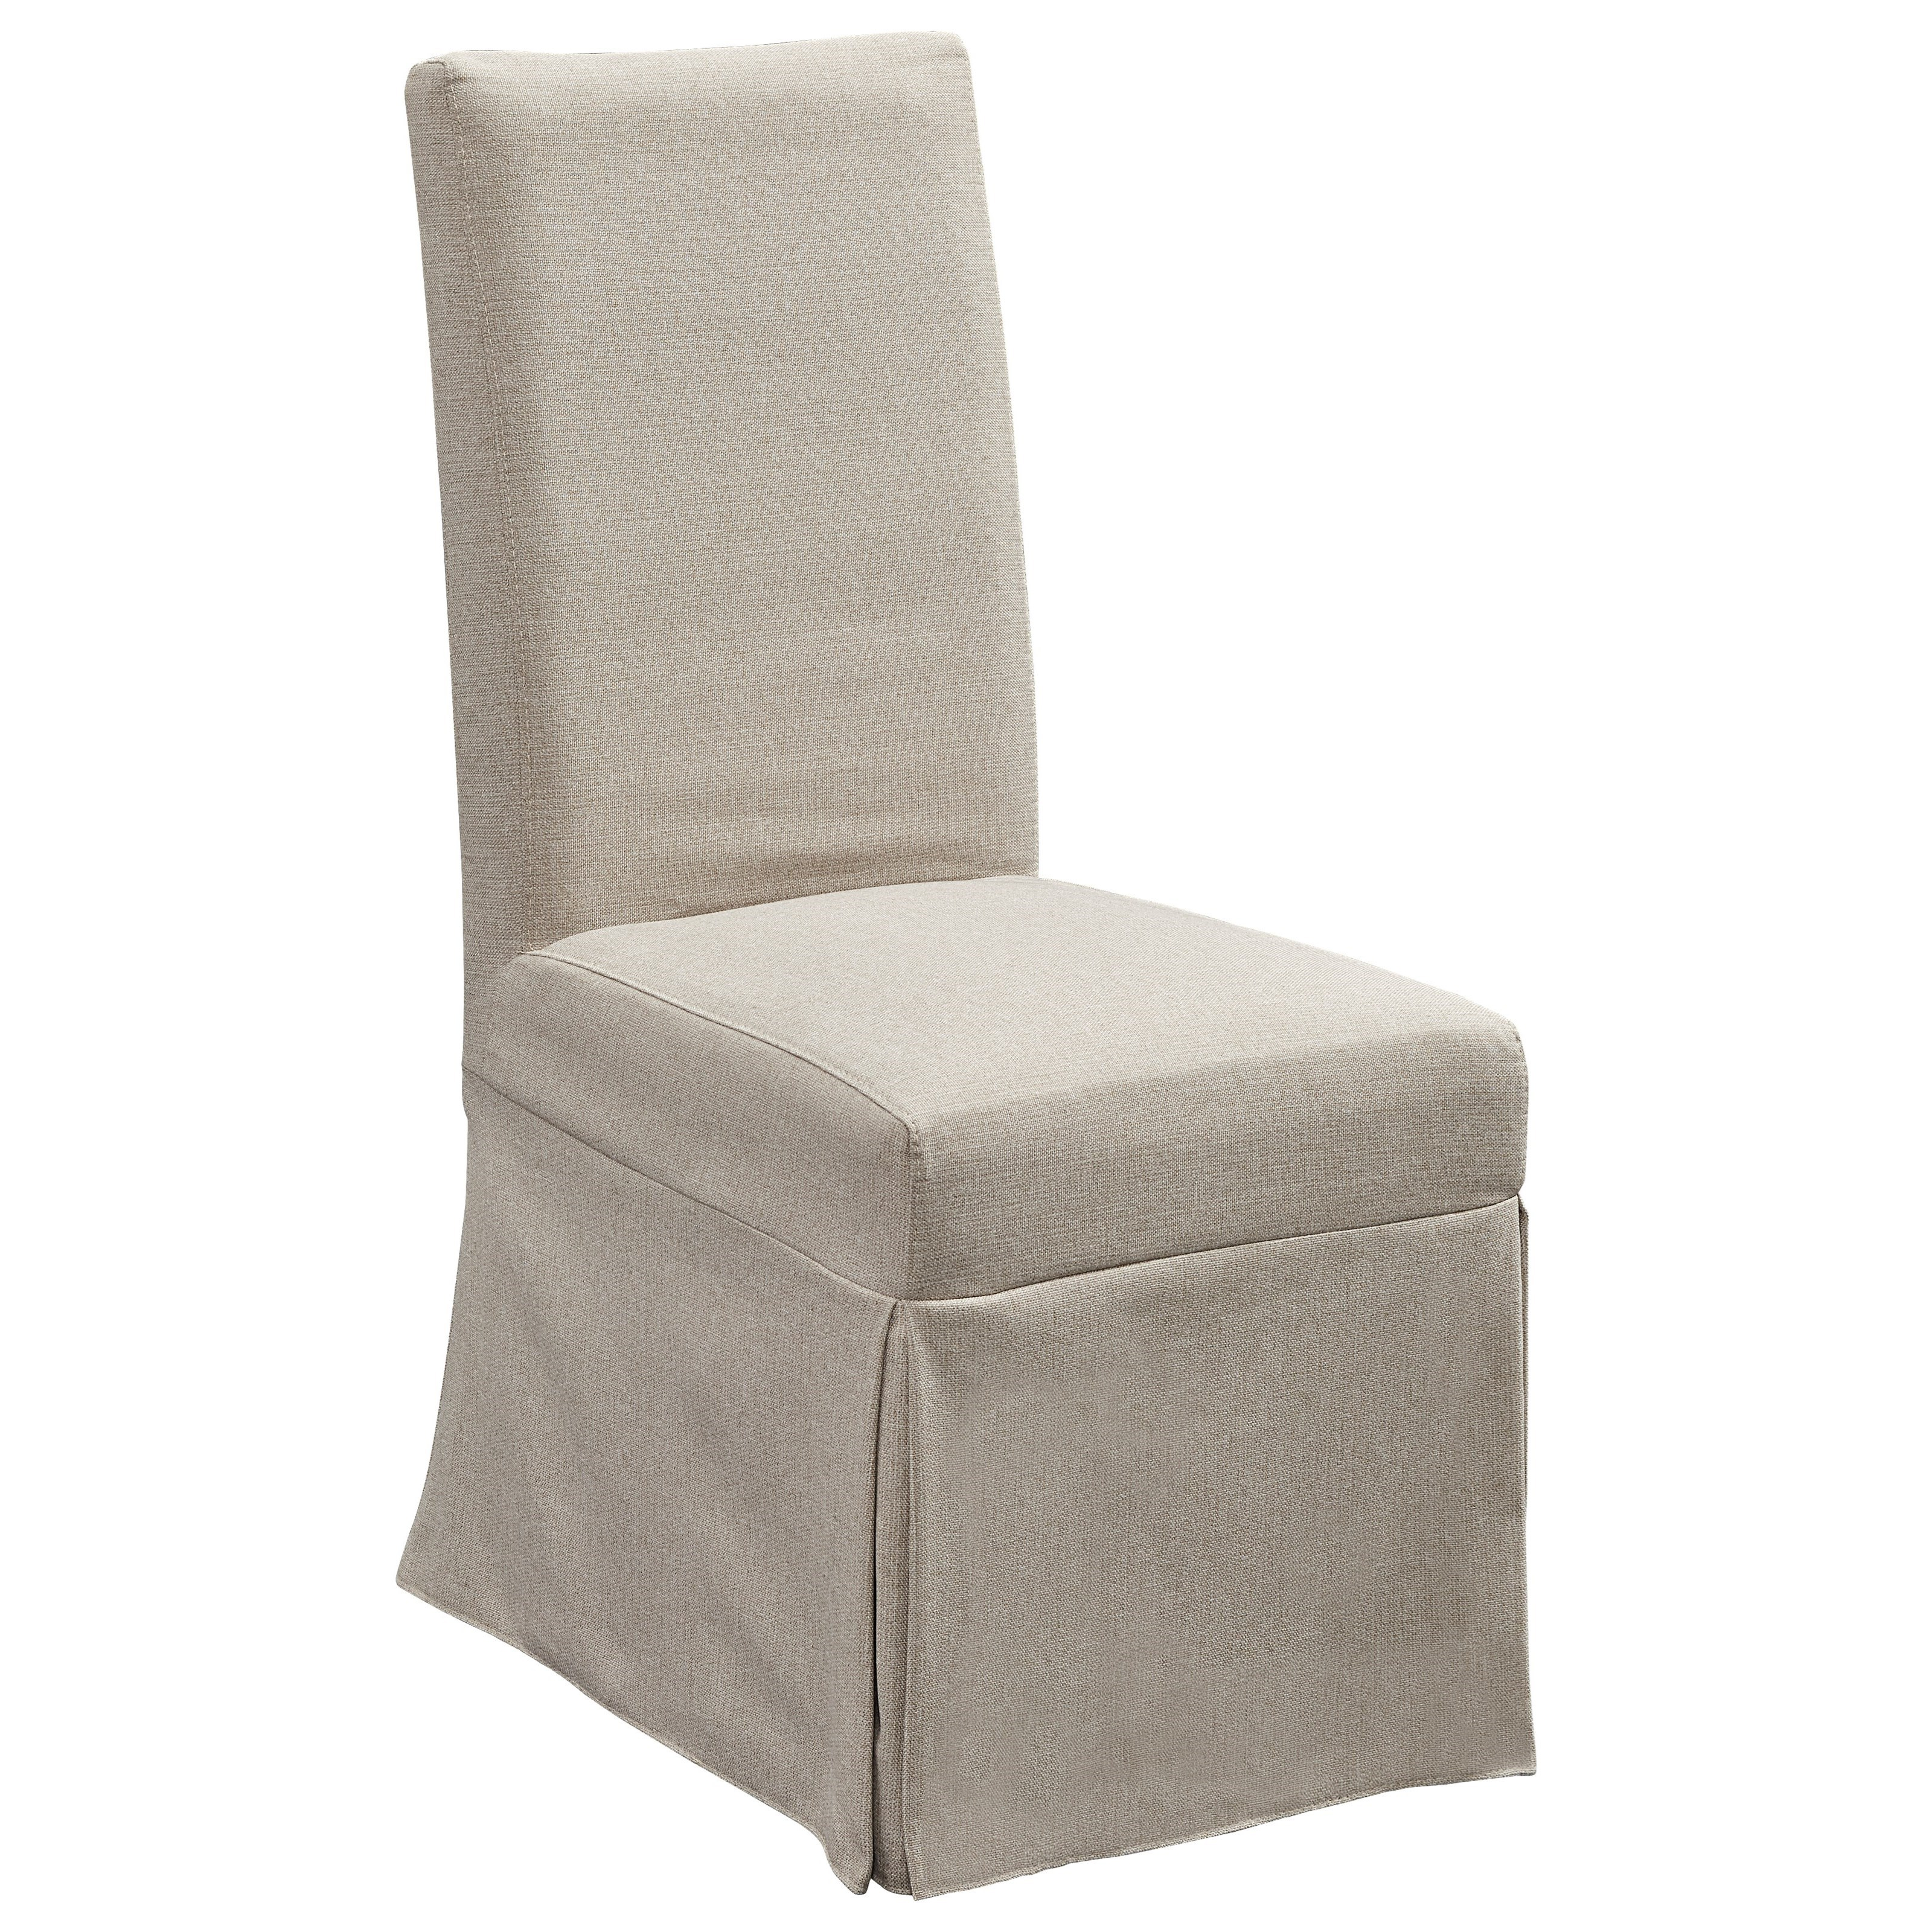 Upholstered Parsons Chair w/ Cover